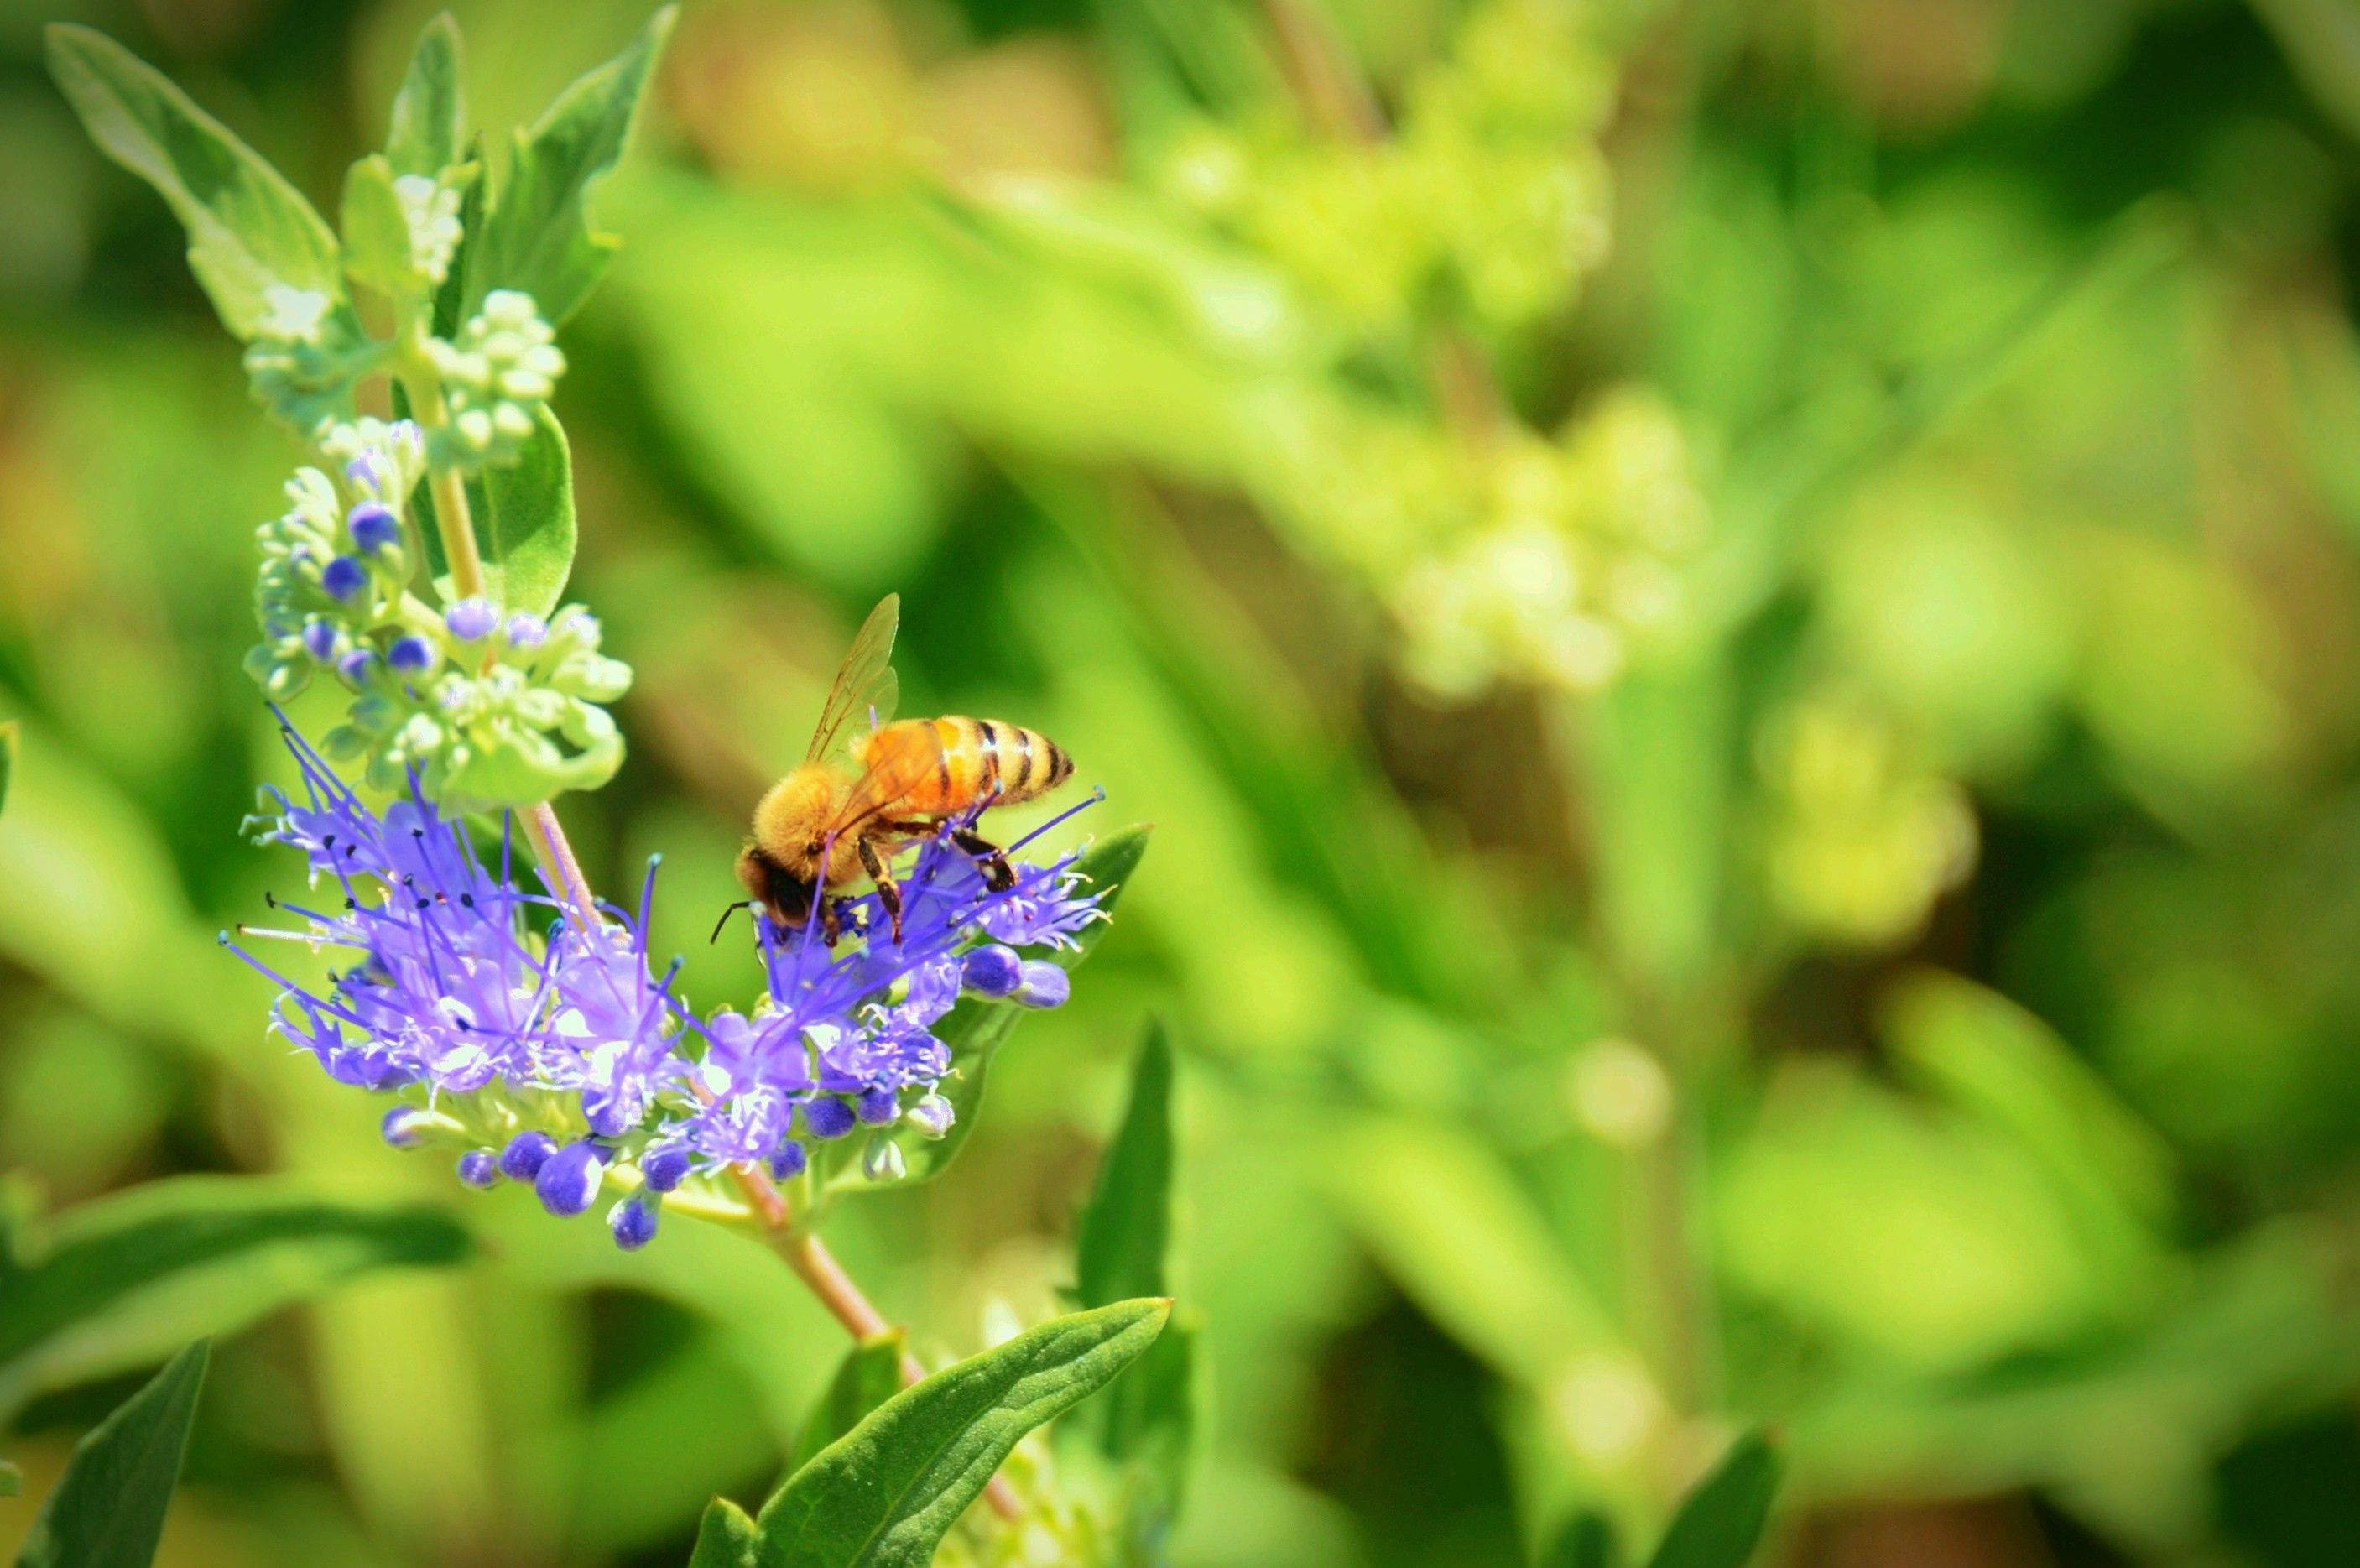 A bee lands on a flower.